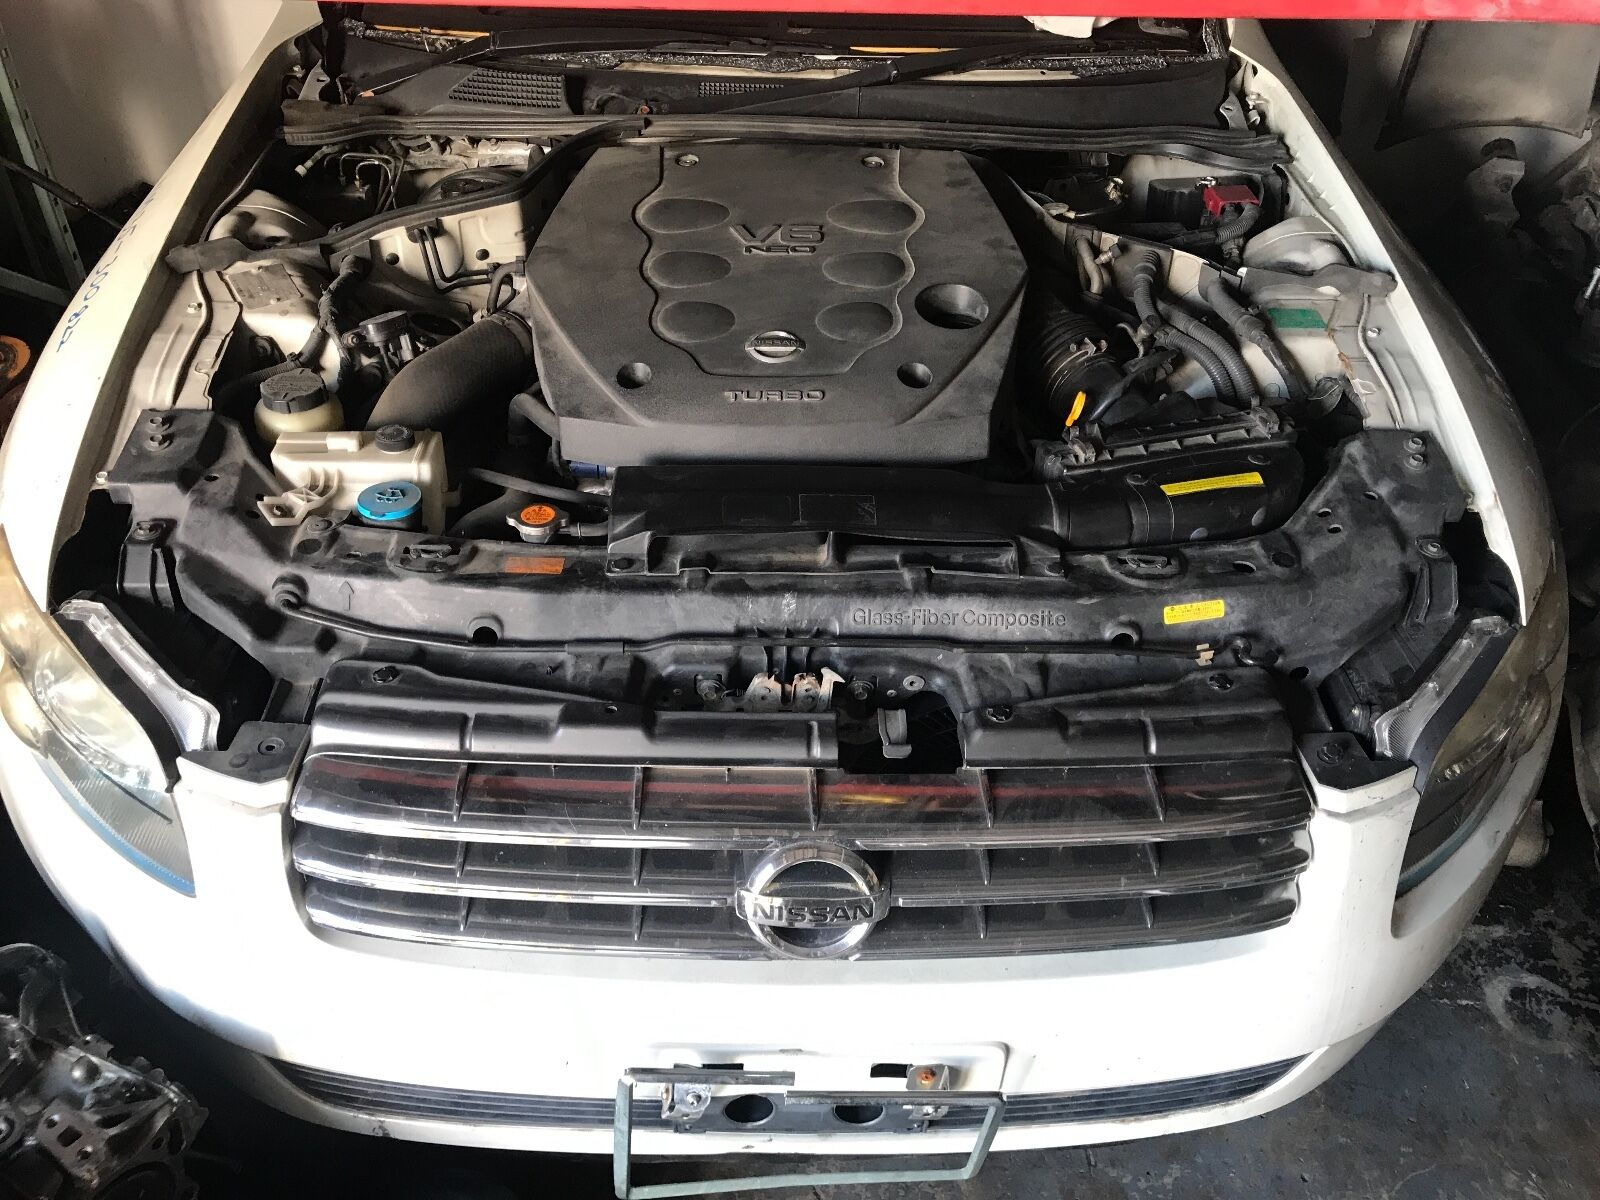 Used Infiniti M35 Engines for Sale